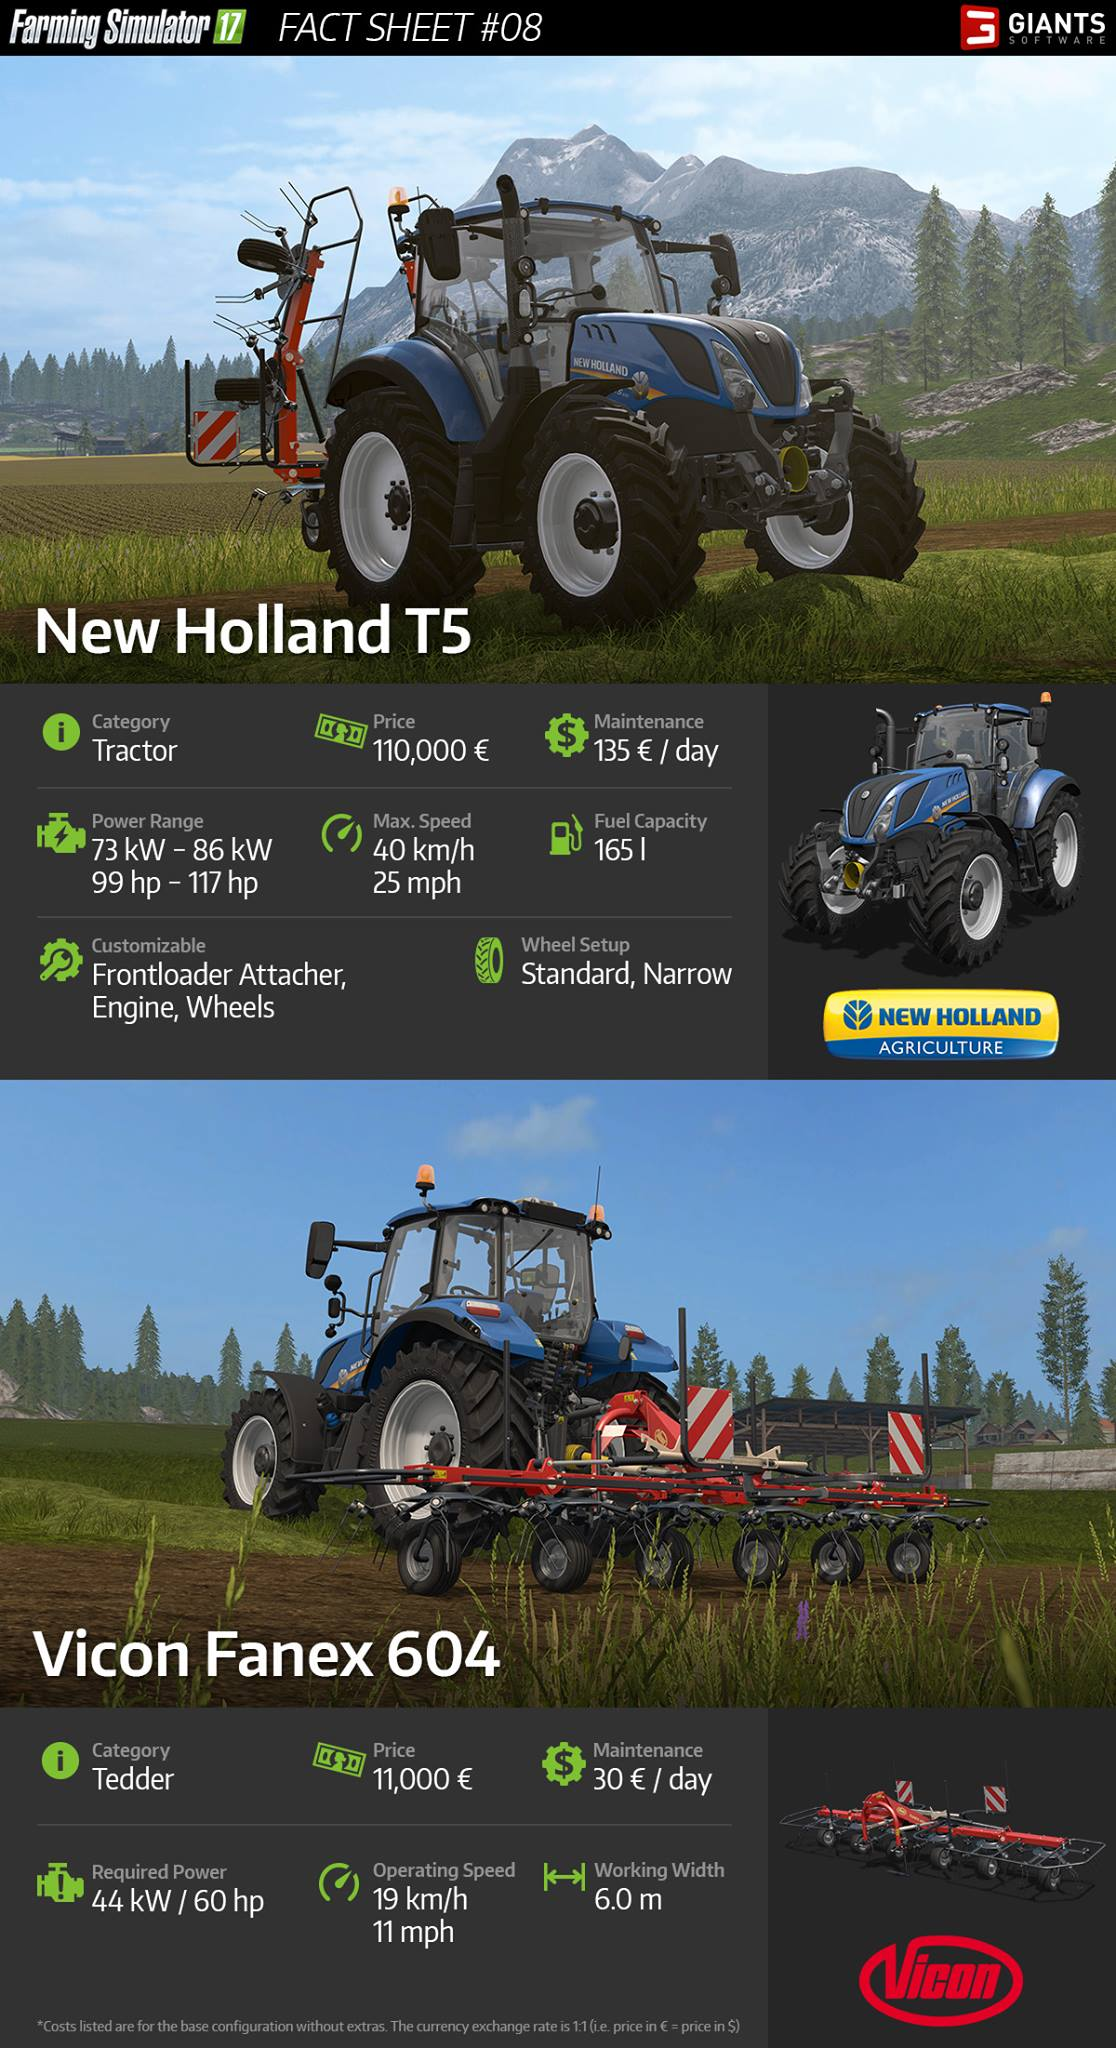 farming-simulator-fact-sheet-08